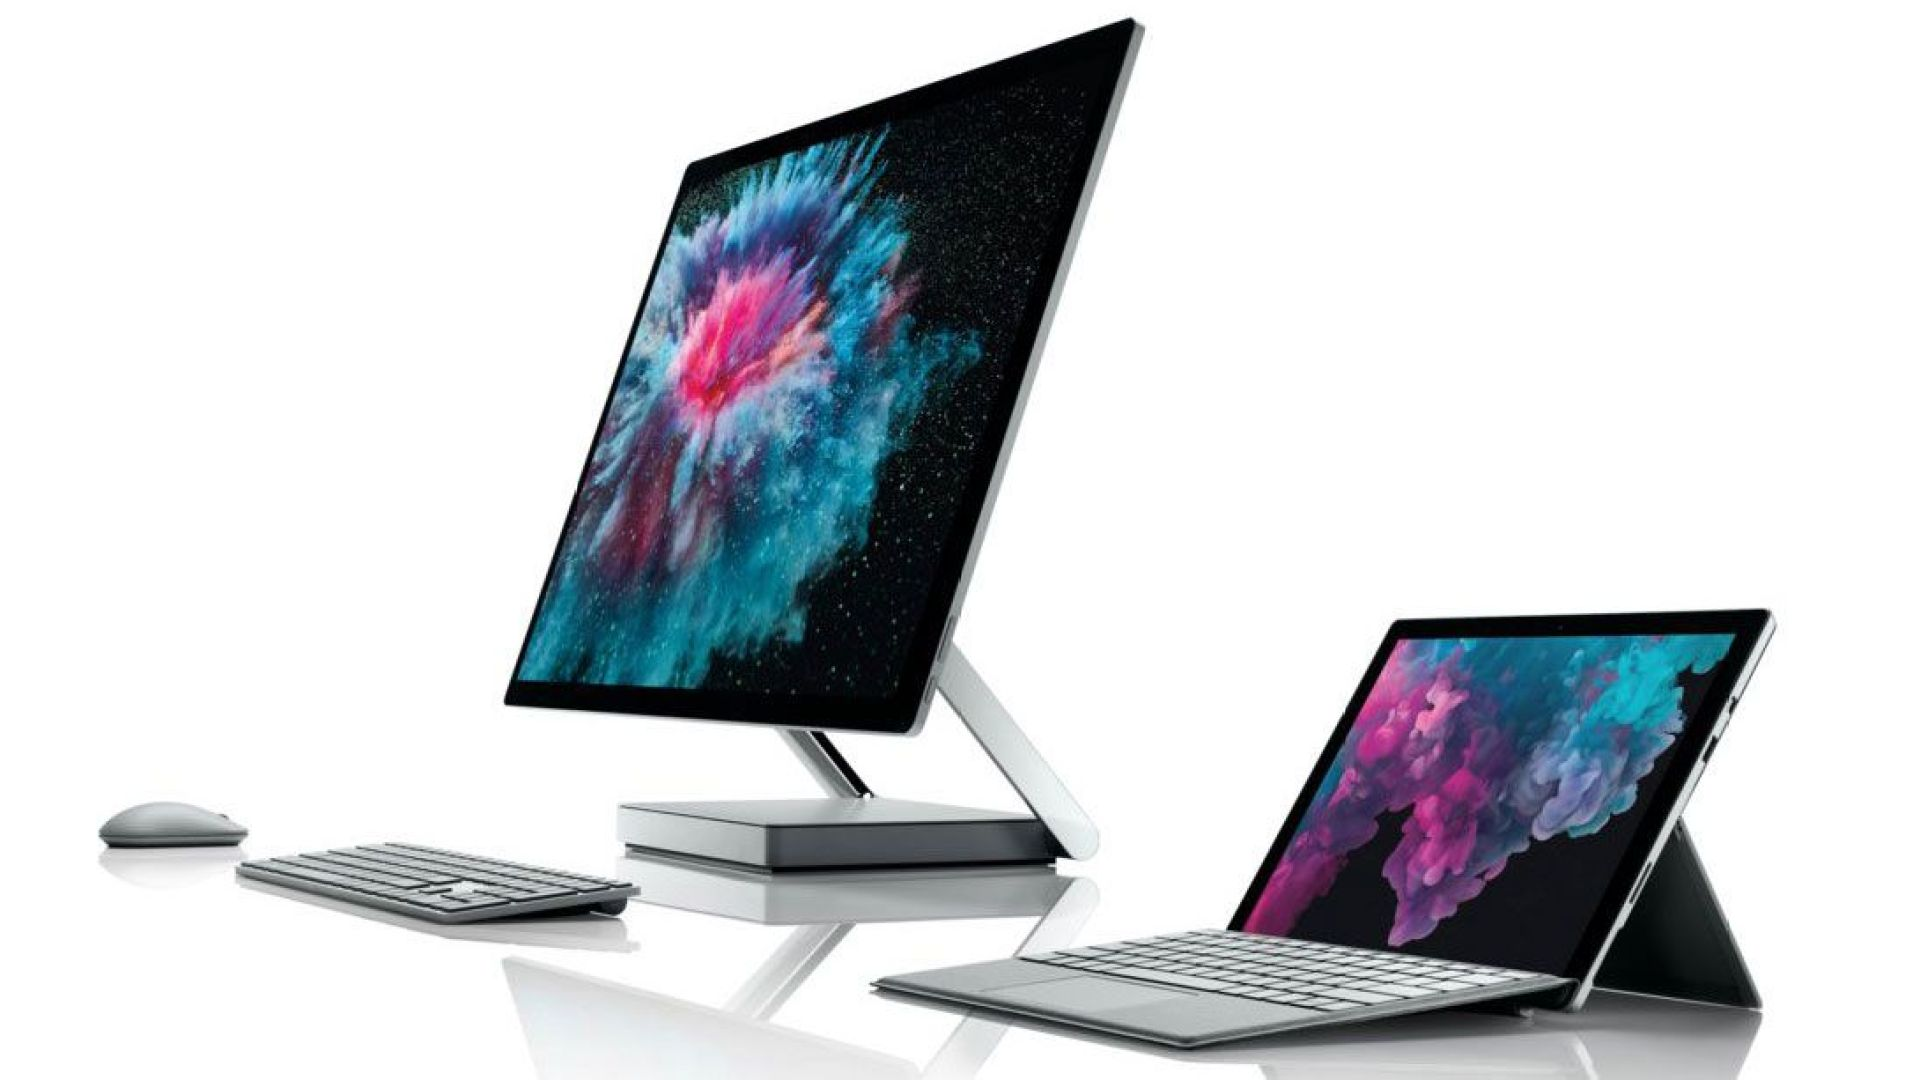 The best Microsoft Surface deals in 2018